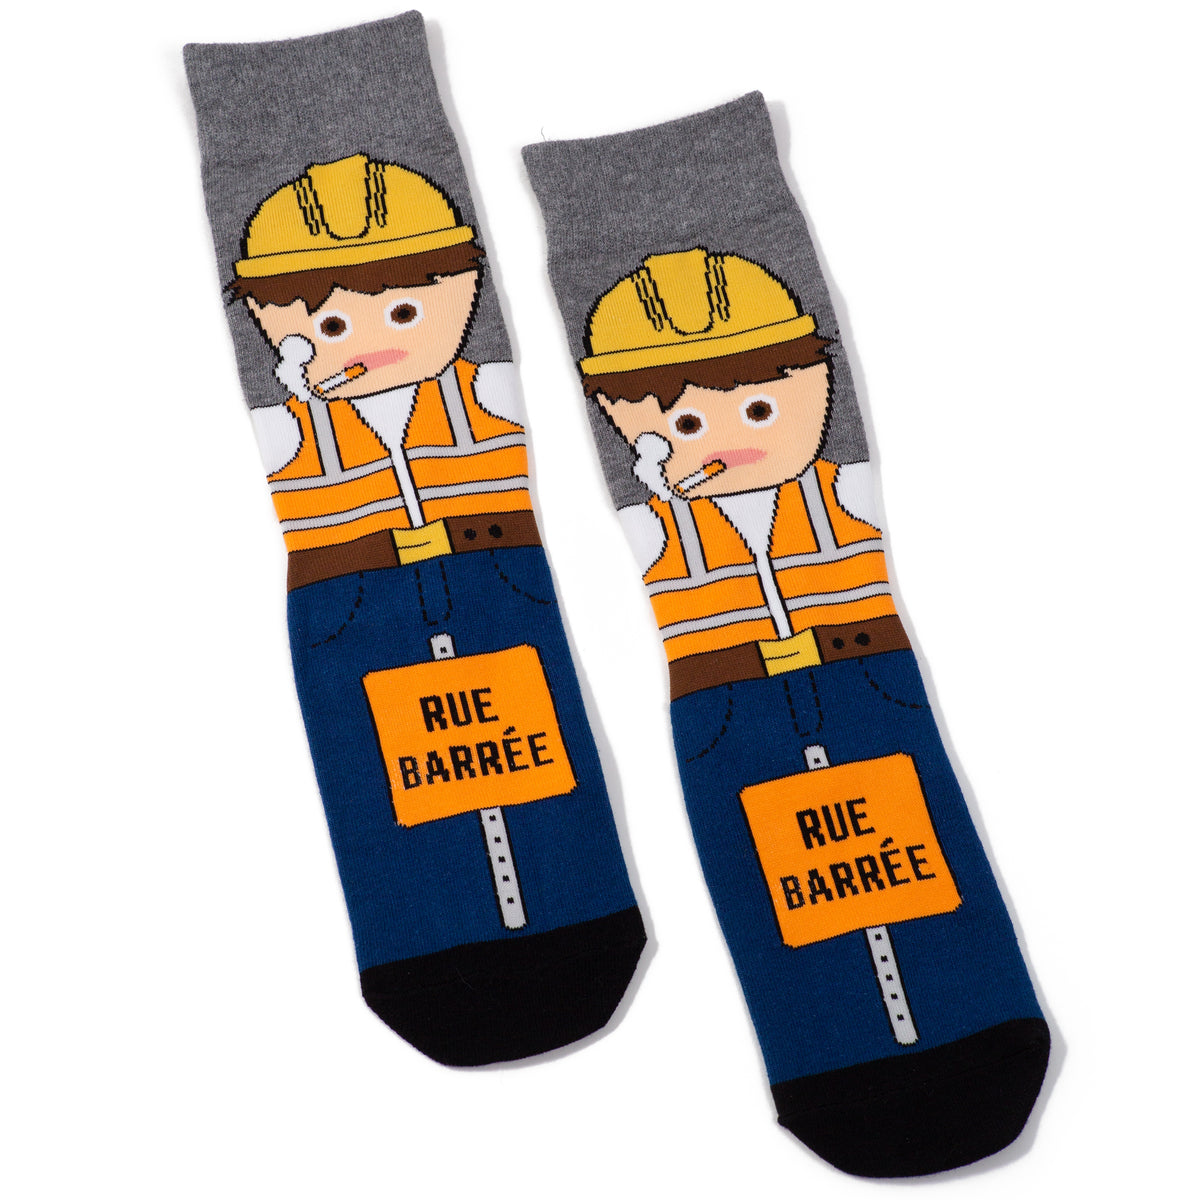 Montreal Construction Worker Socks - Main and Local